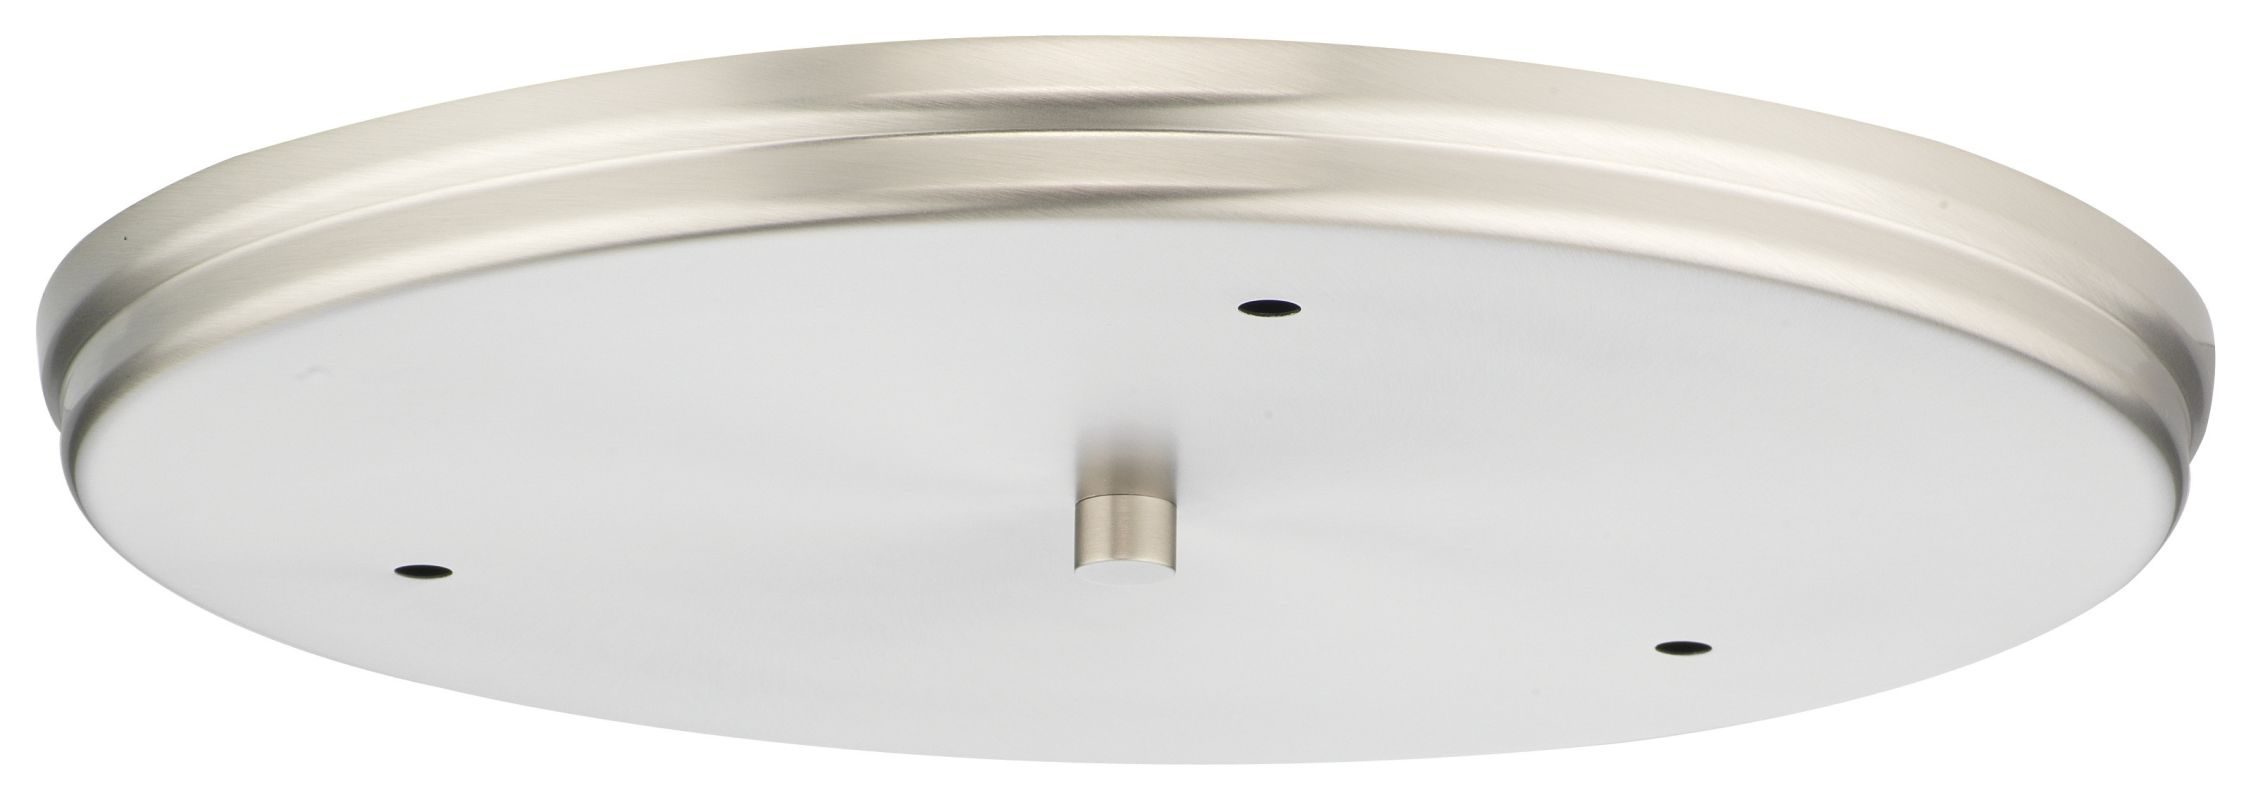 Forecast Lighting F510336 A La Carte Canopy from the Suspension